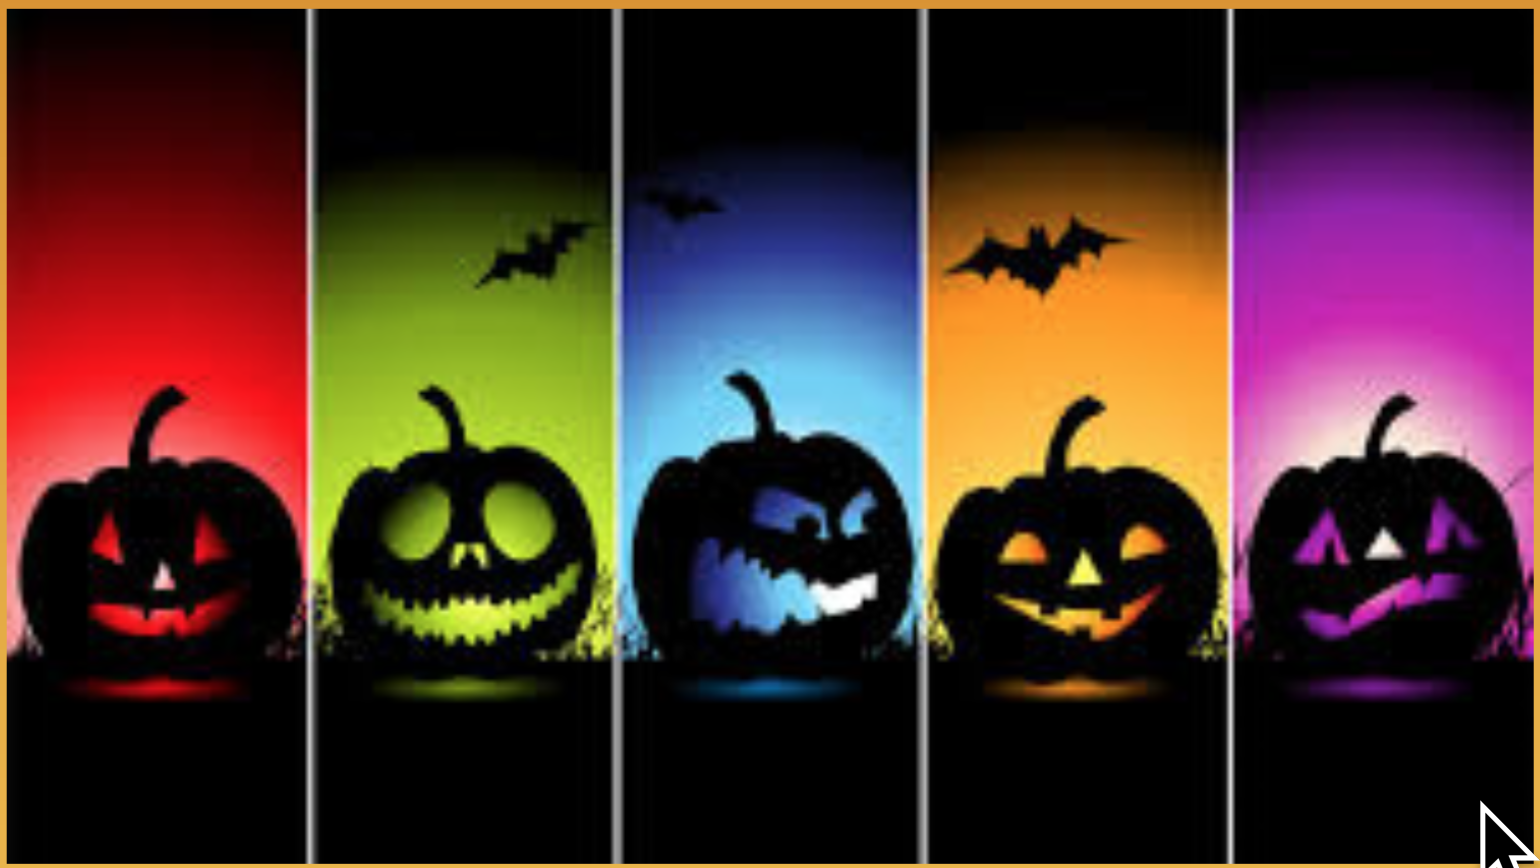 halloween safety tips from the seattle police department; how to